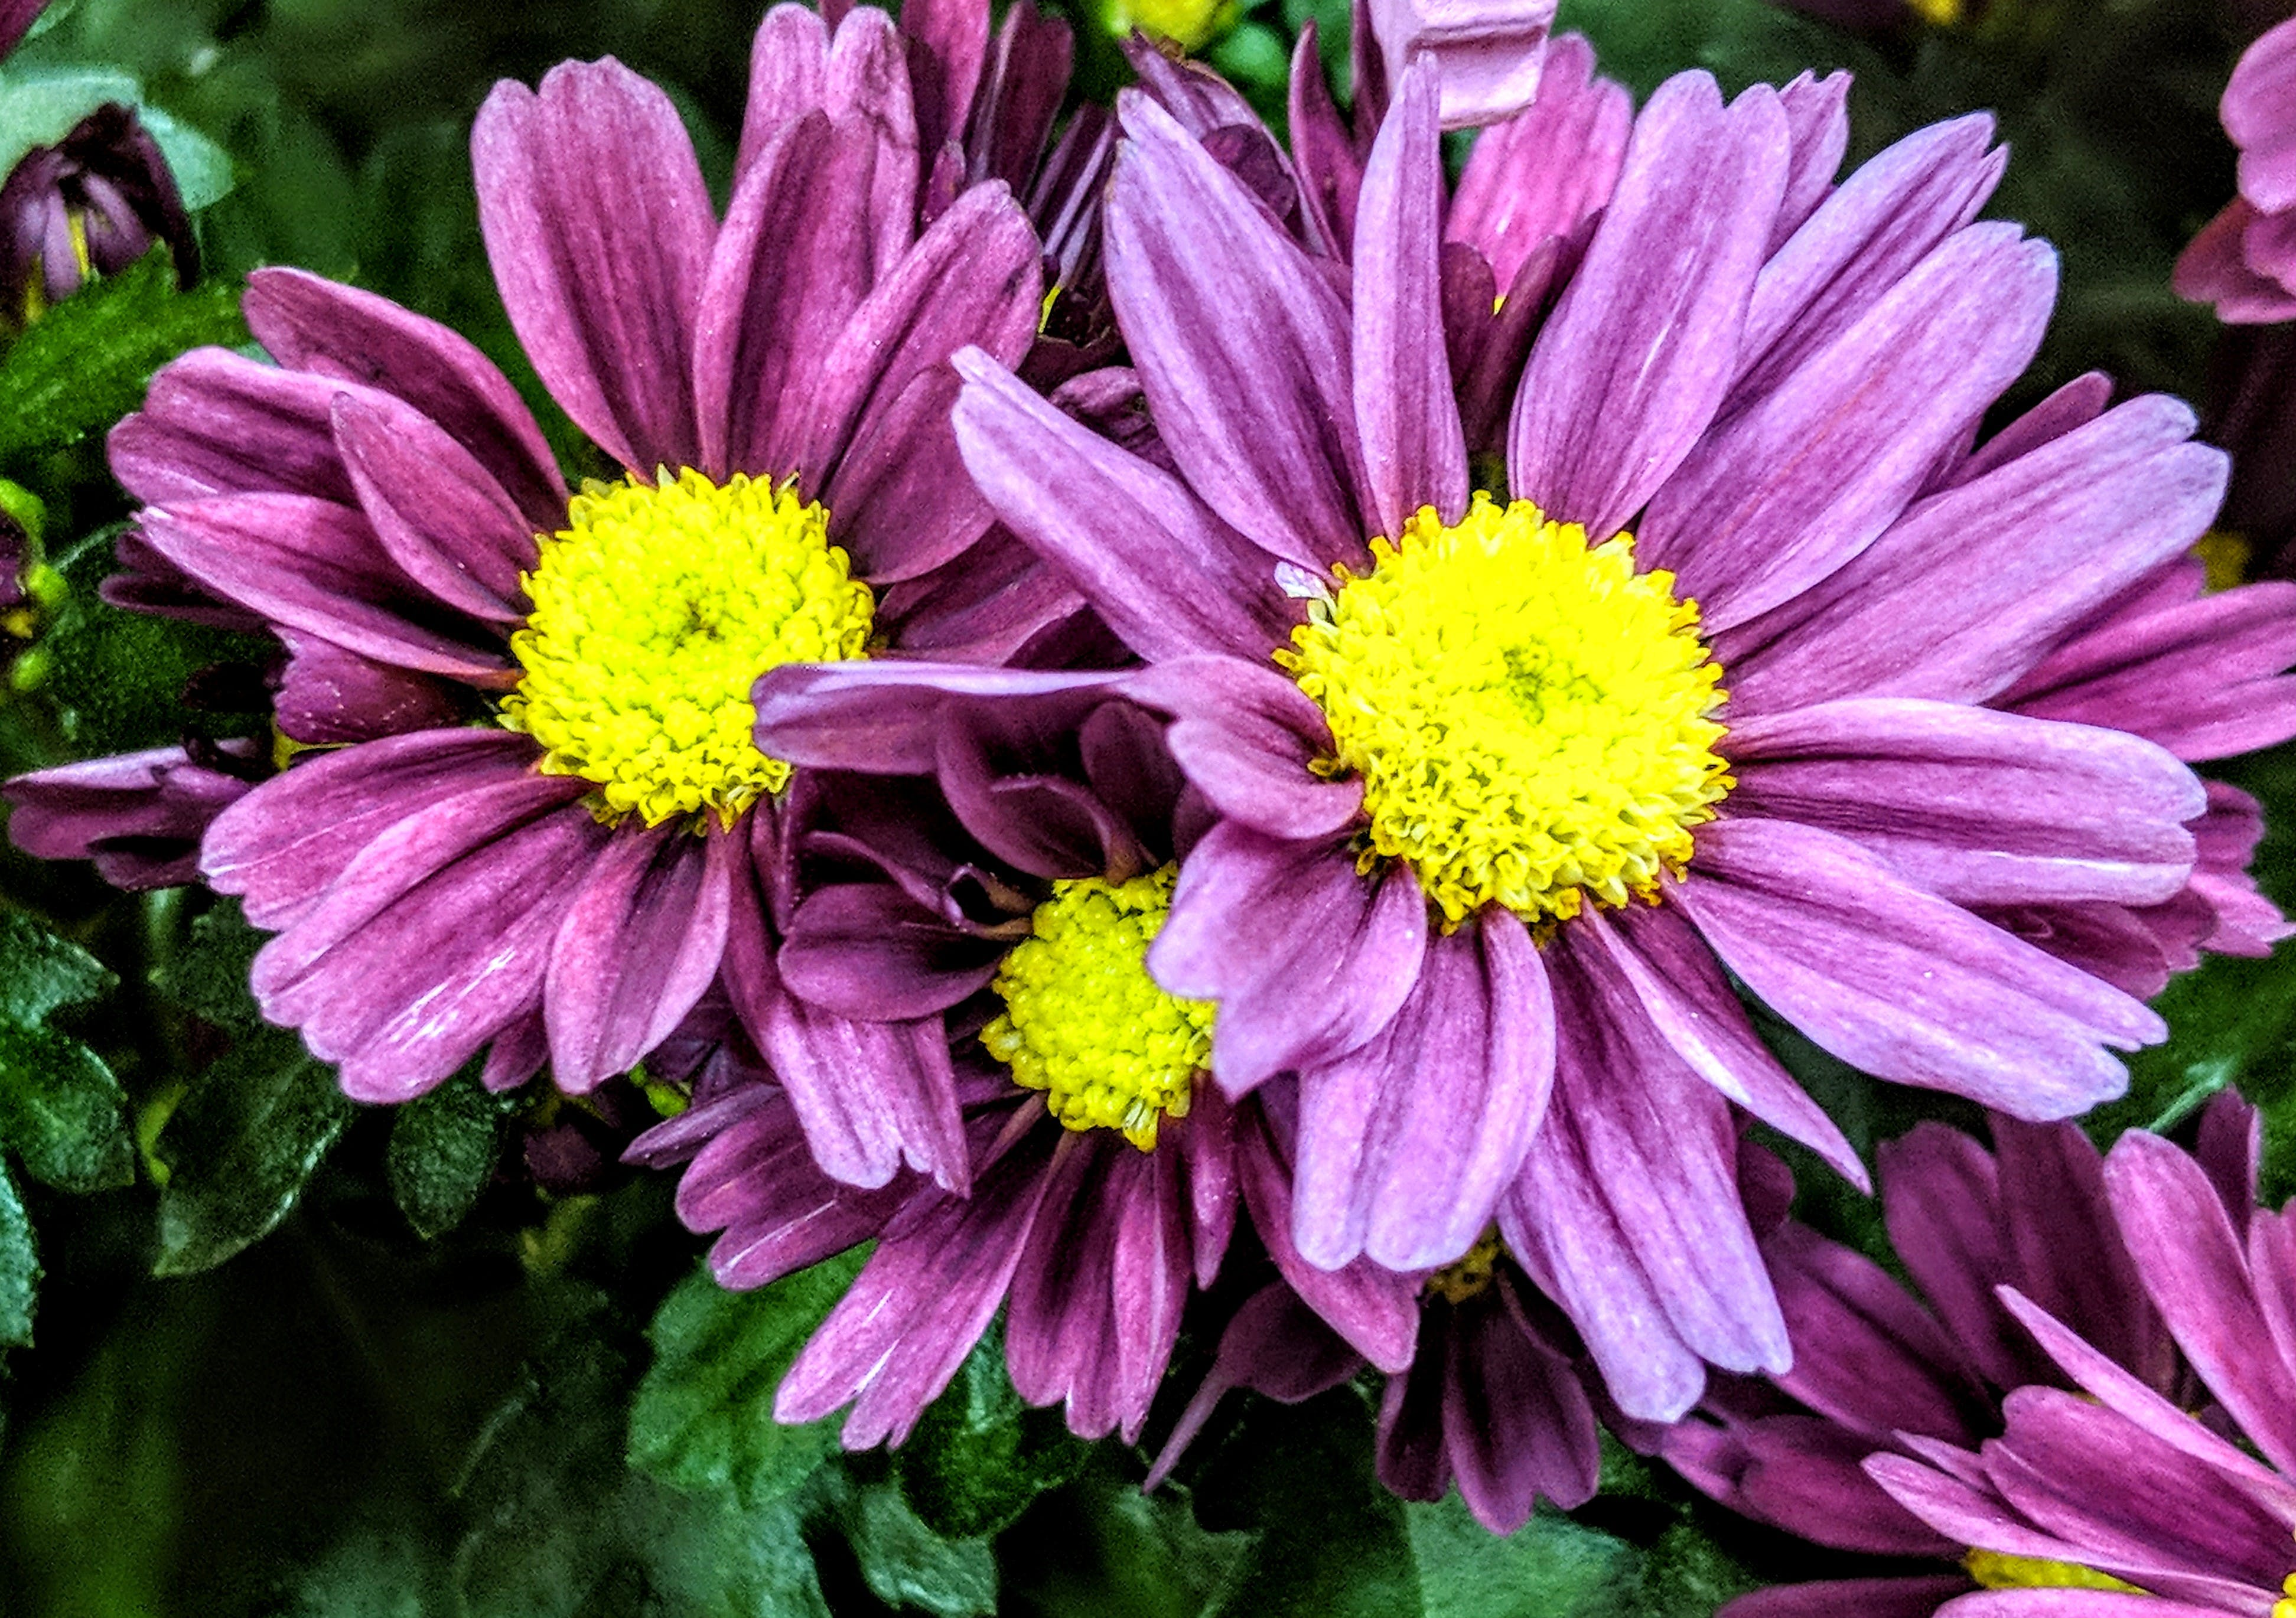 Close-up Photo Of Purple Petaled Flowers